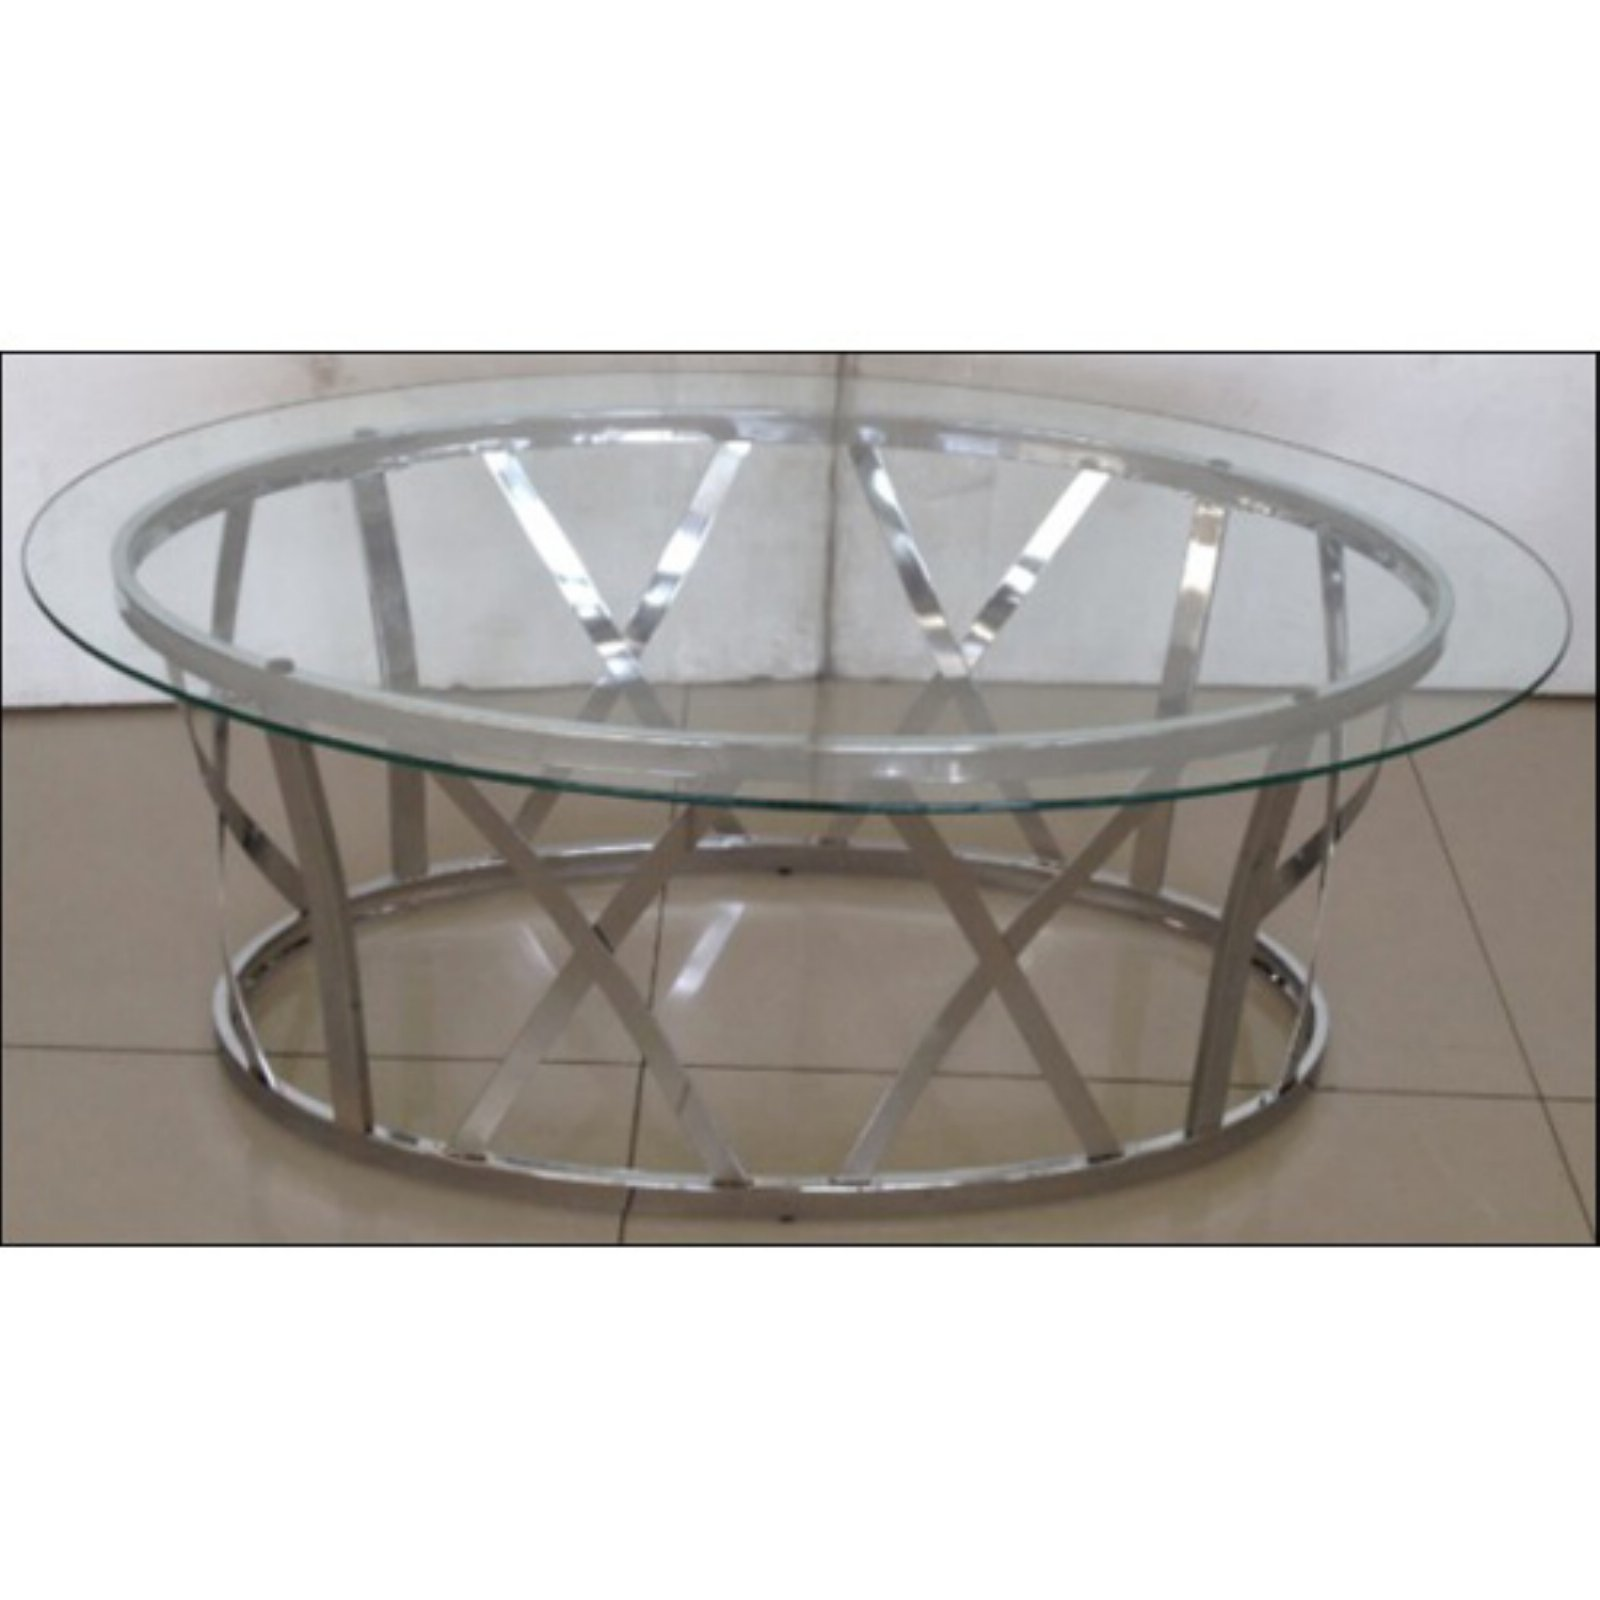 United Furniture 48 in. Oval Cocktail Table by United Furniture Industries